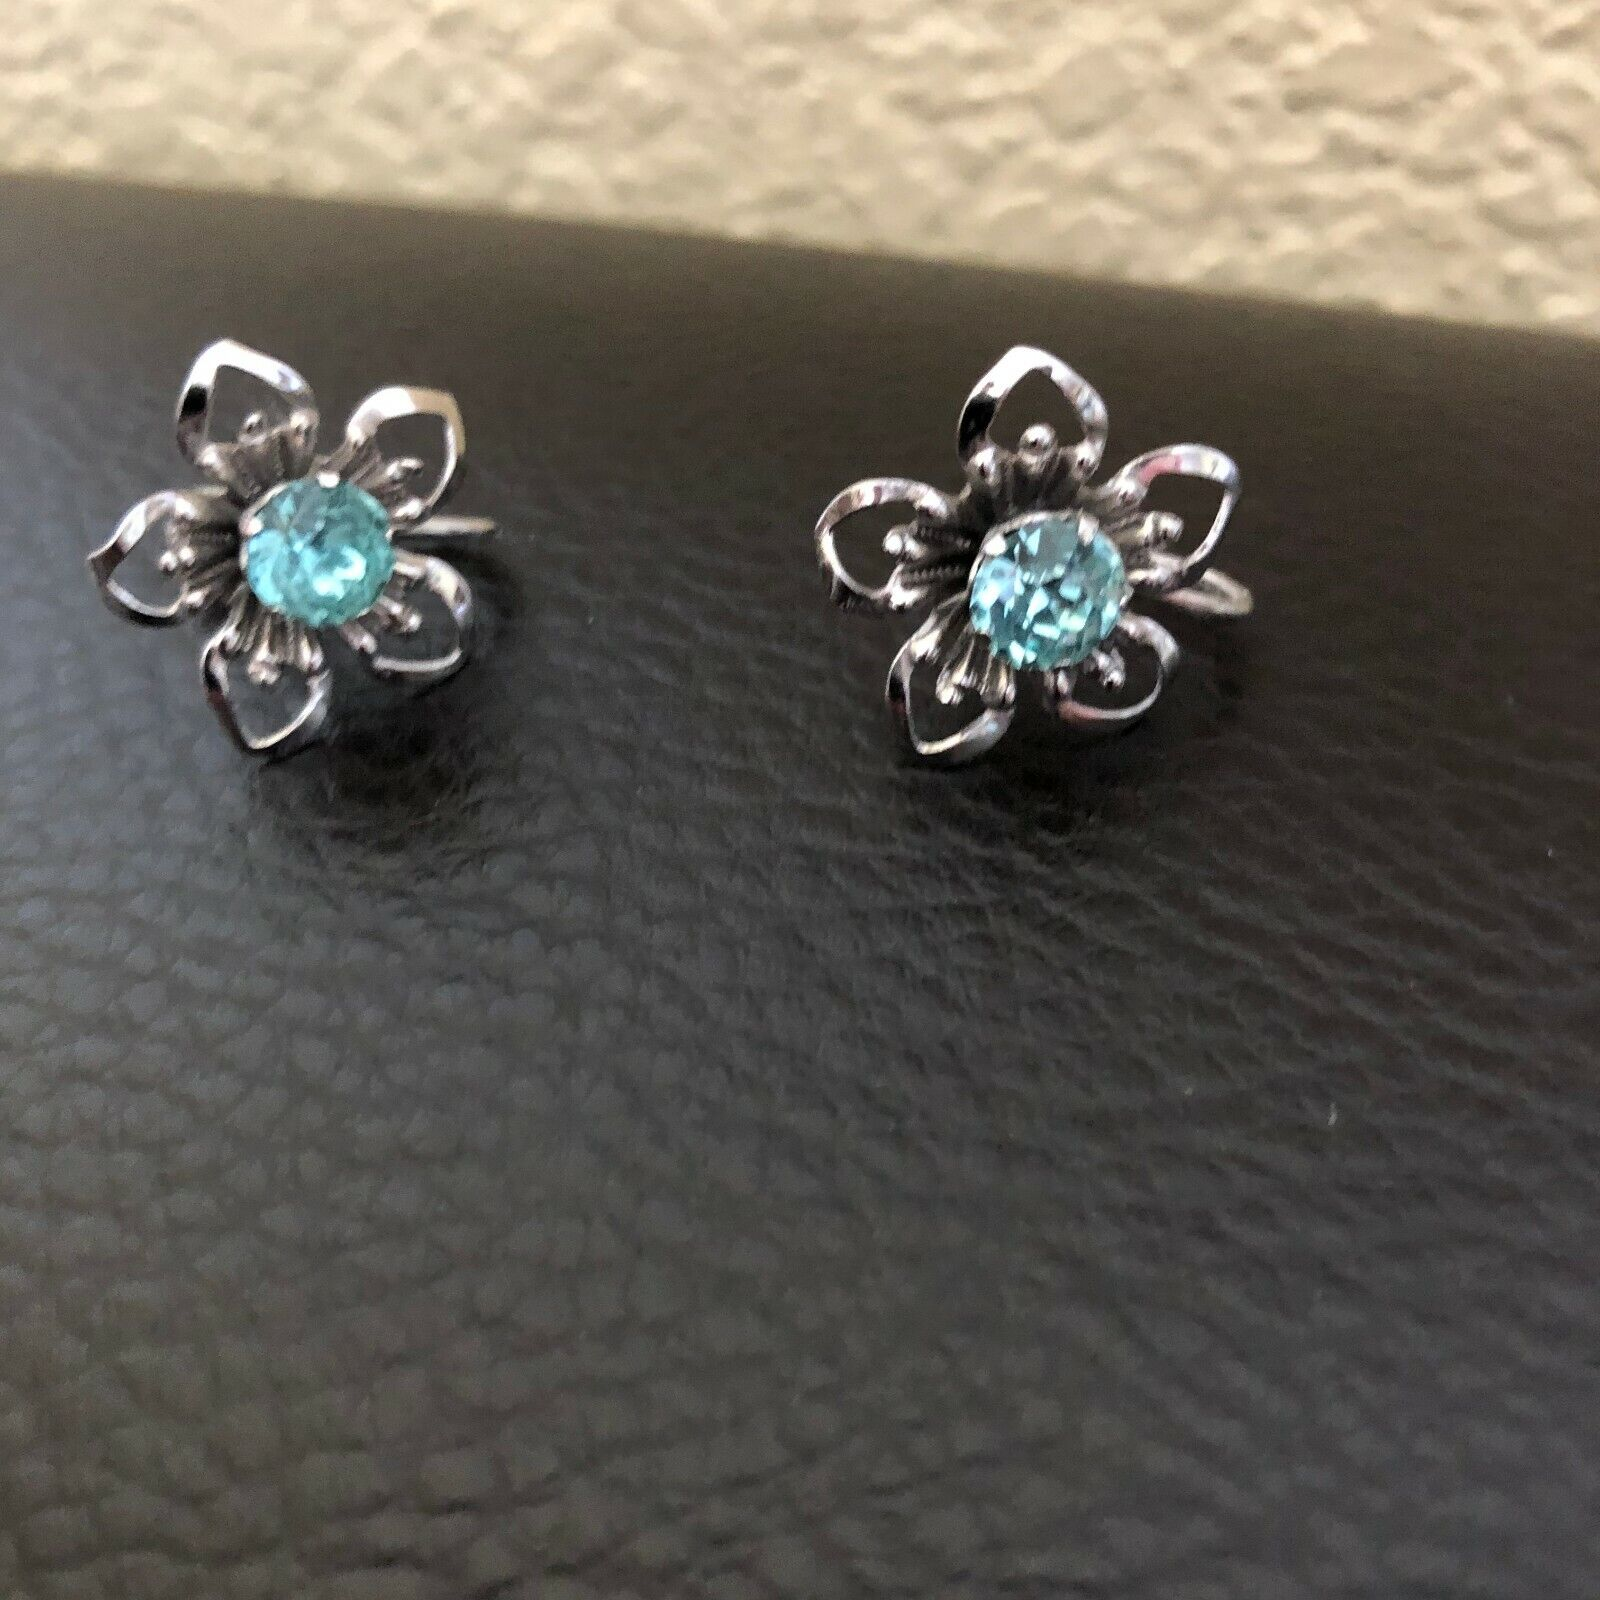 Vintage Large Spray Style Pin Blue Stones and Pearls plus Pierced Earrings